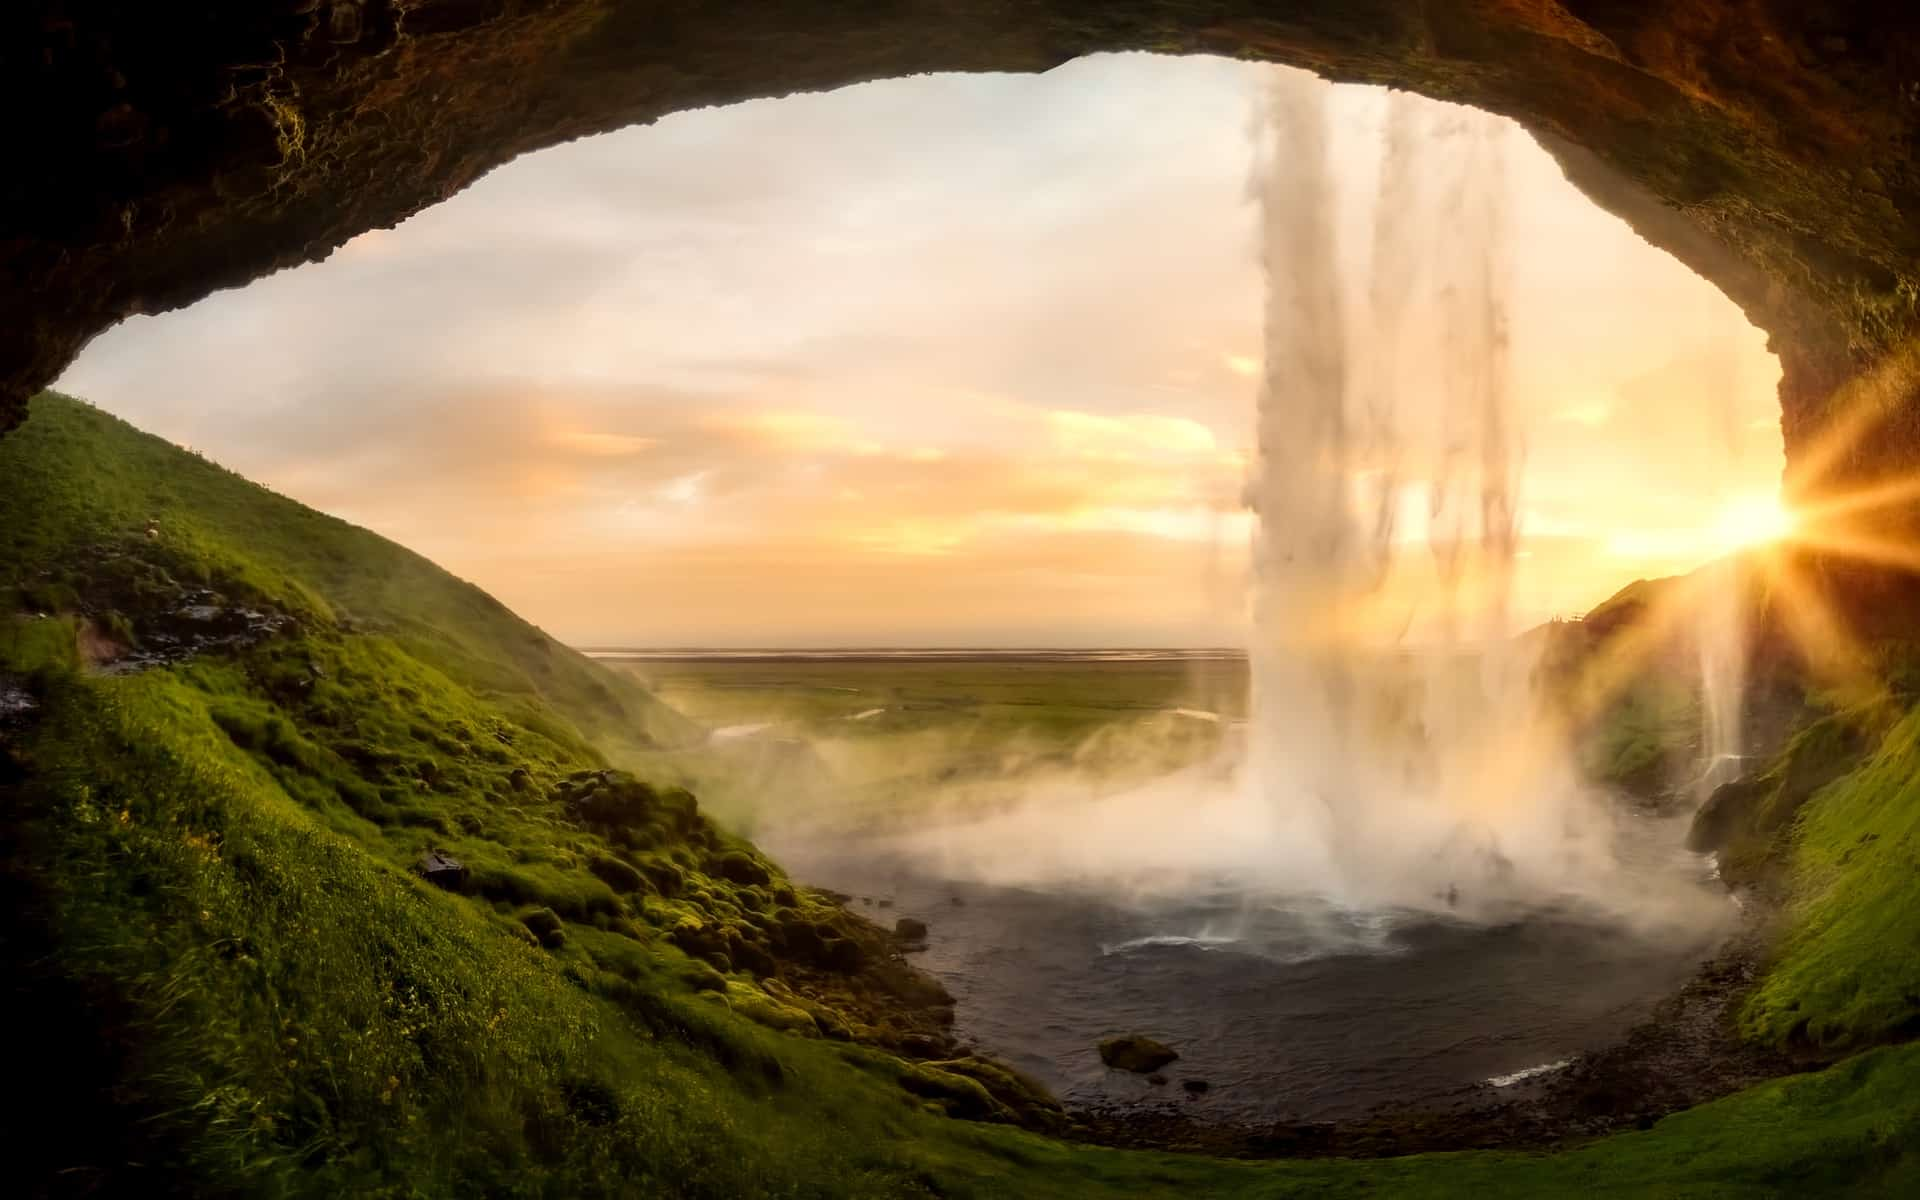 waterfalls in iceland - Seljalandsfoss